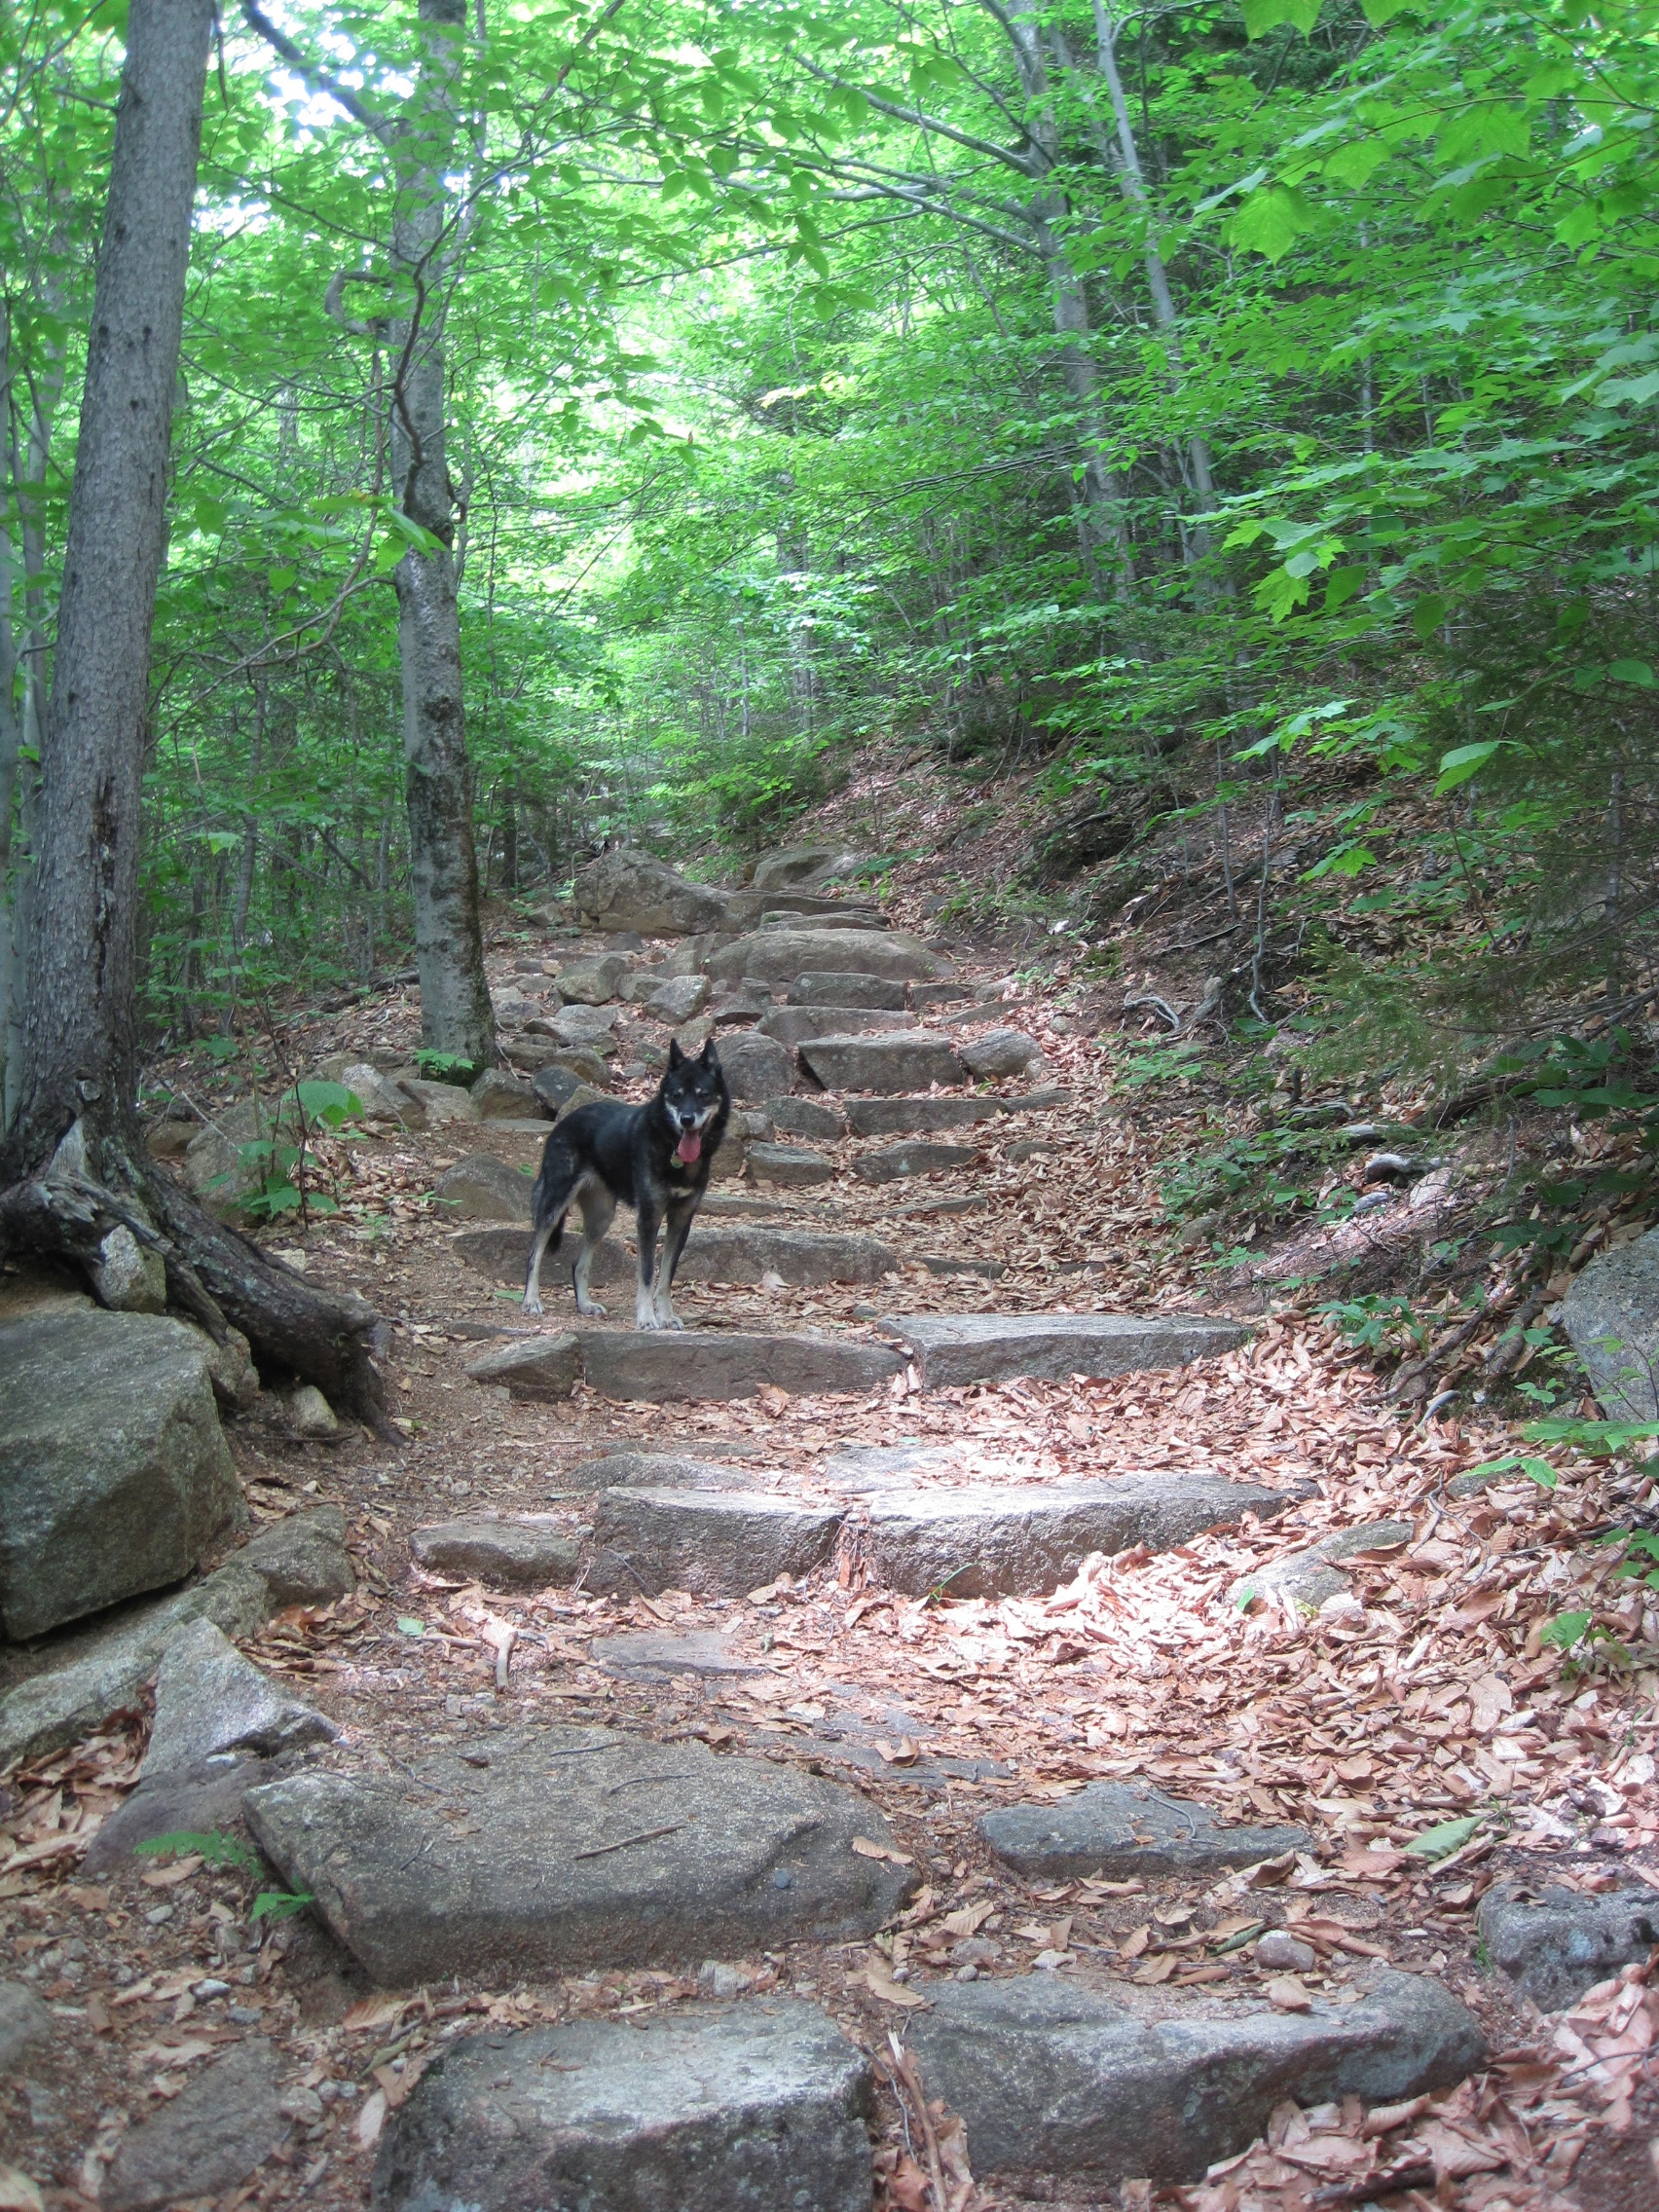 Taking on the Piper Trail, on her last big construction project at Peacook Shelter, 2012